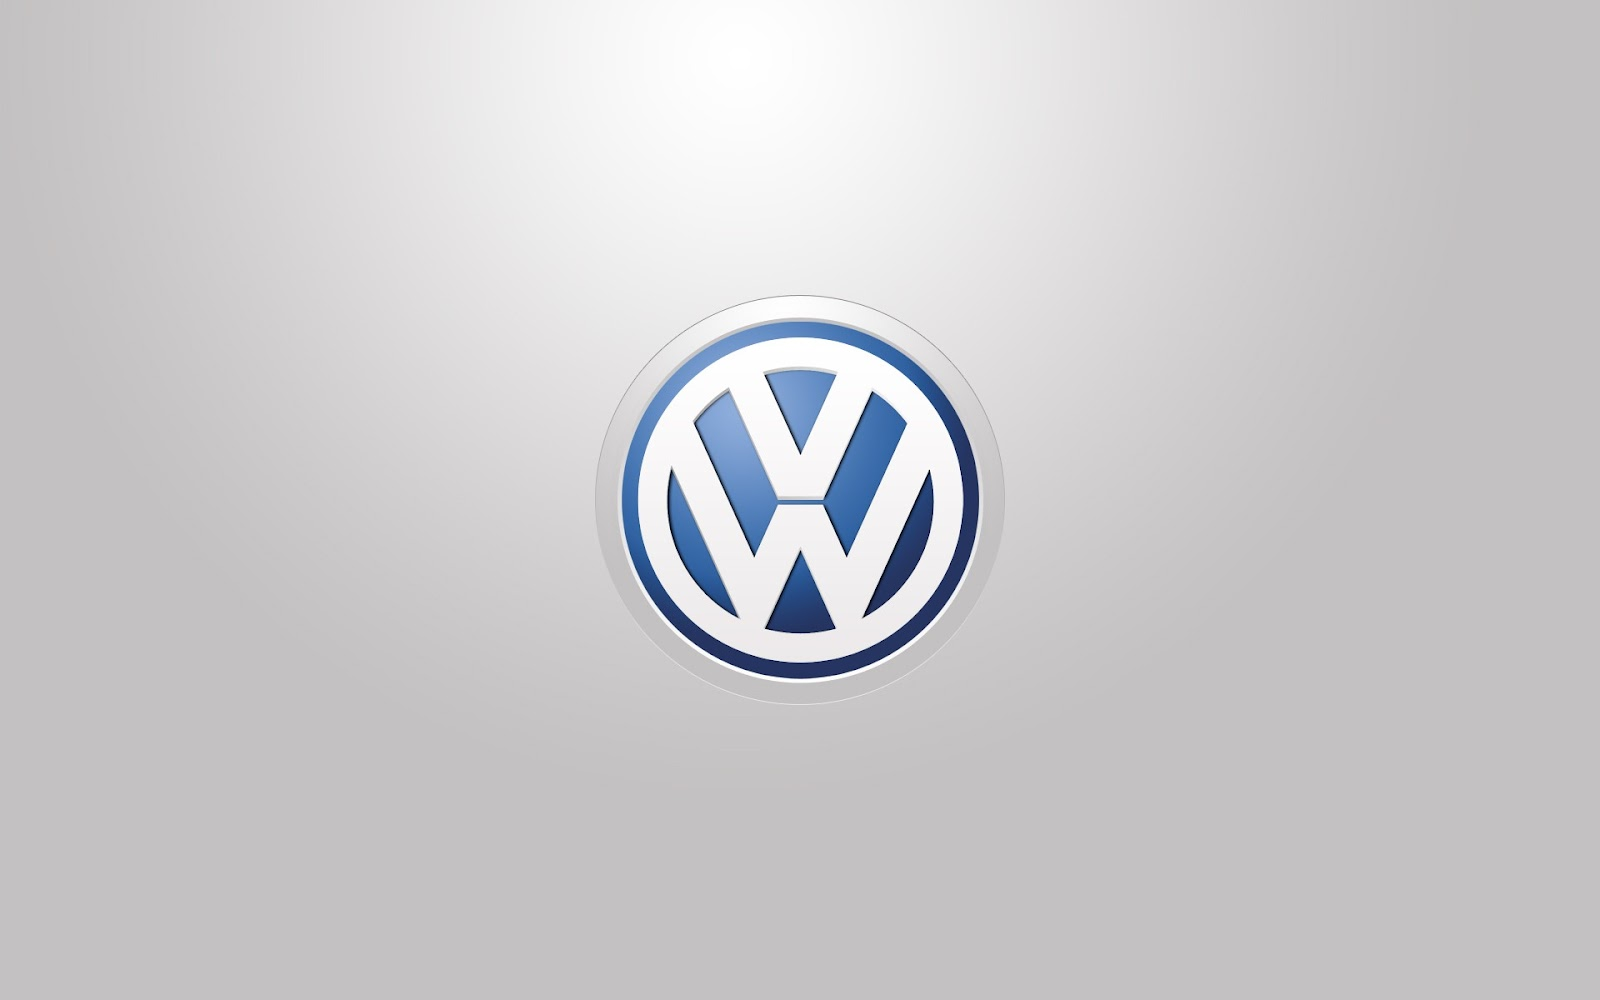 Volkswagen VW Logo Wallpaper Download 812 Wallpaper Cool 1600x1000